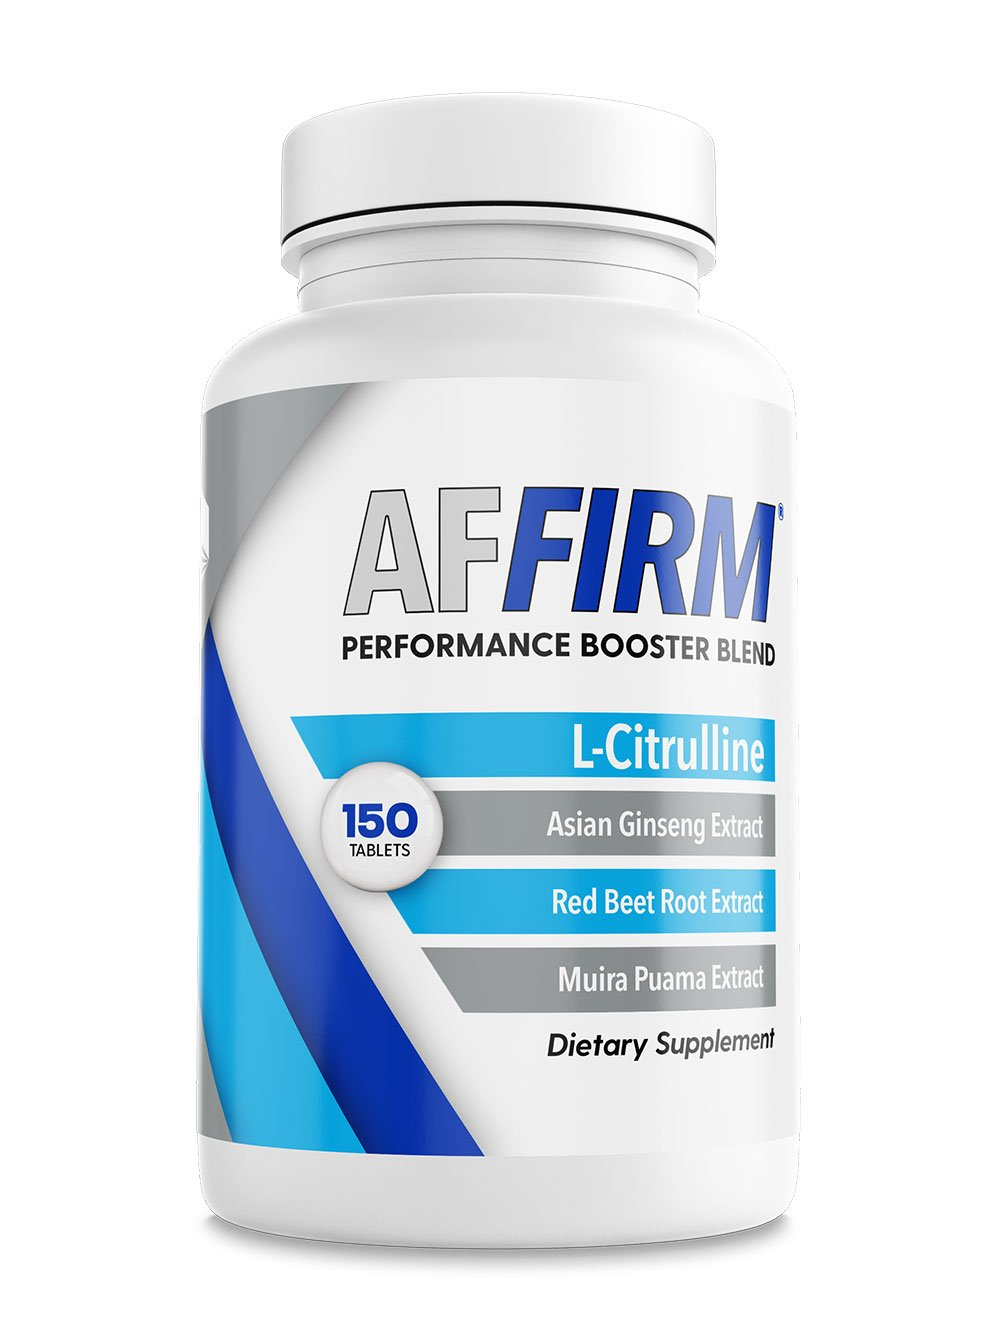 AFFIRM L-Citrulline Dietary Supplement 750mg I 150 Tablets I 1 bottle